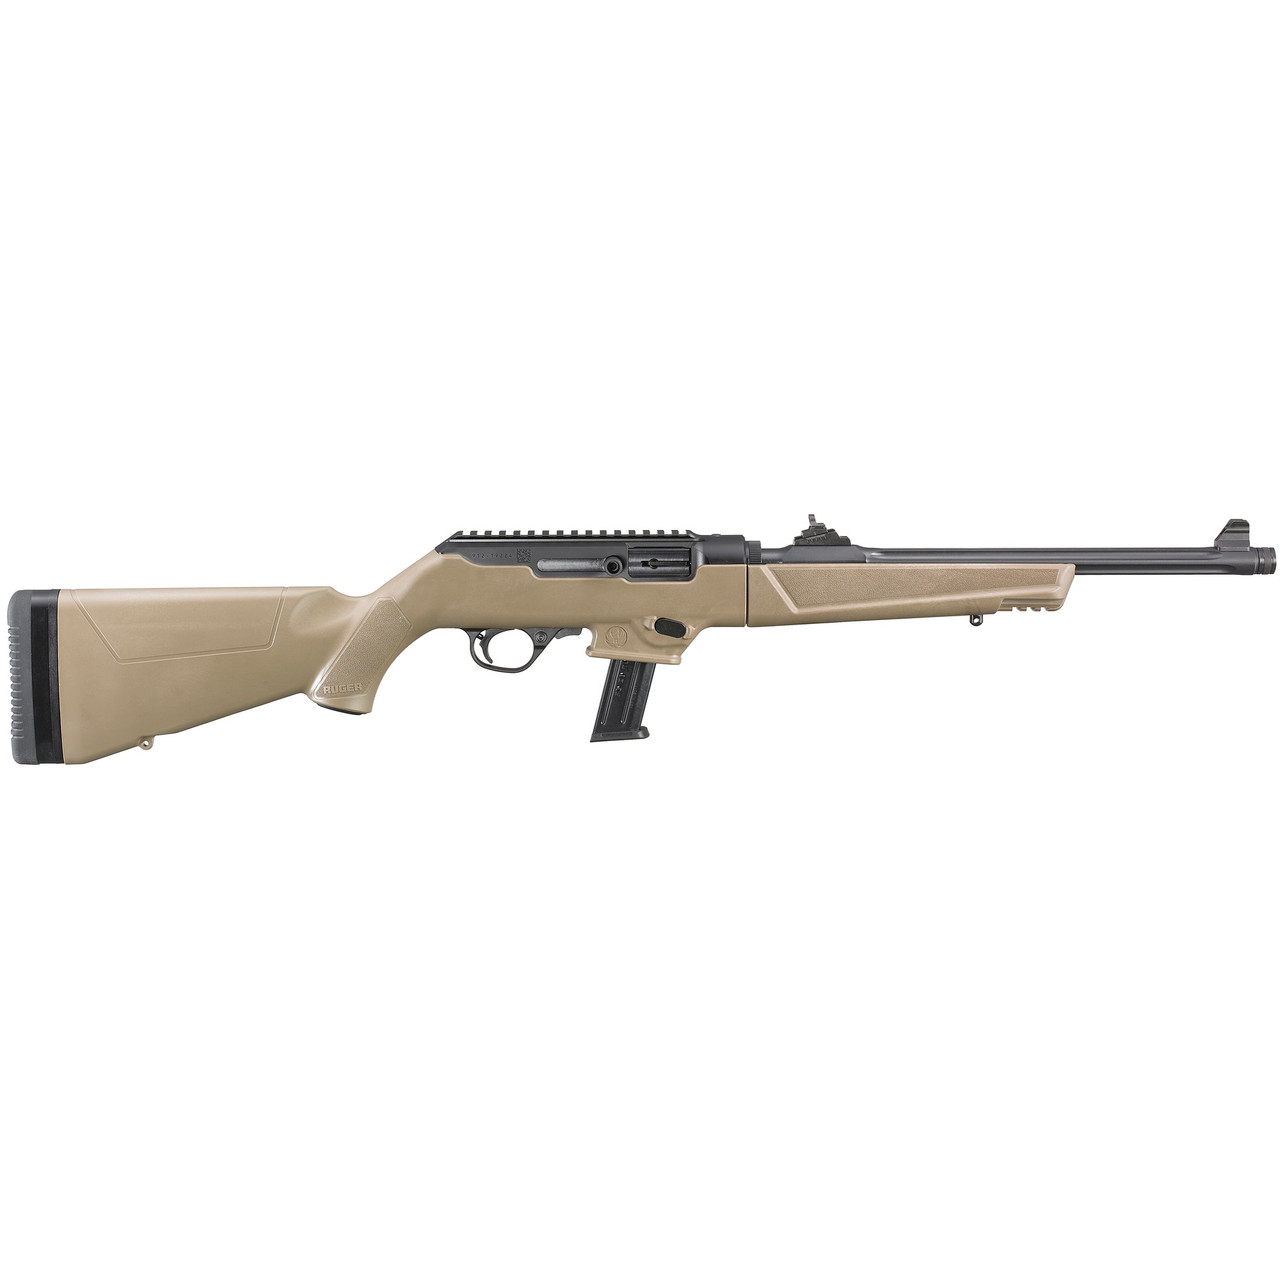 Ruger PC Carbine (Fluted, Threaded, Heavy Barrel) CALIFORNIA LEGAL - 9mm - FDE